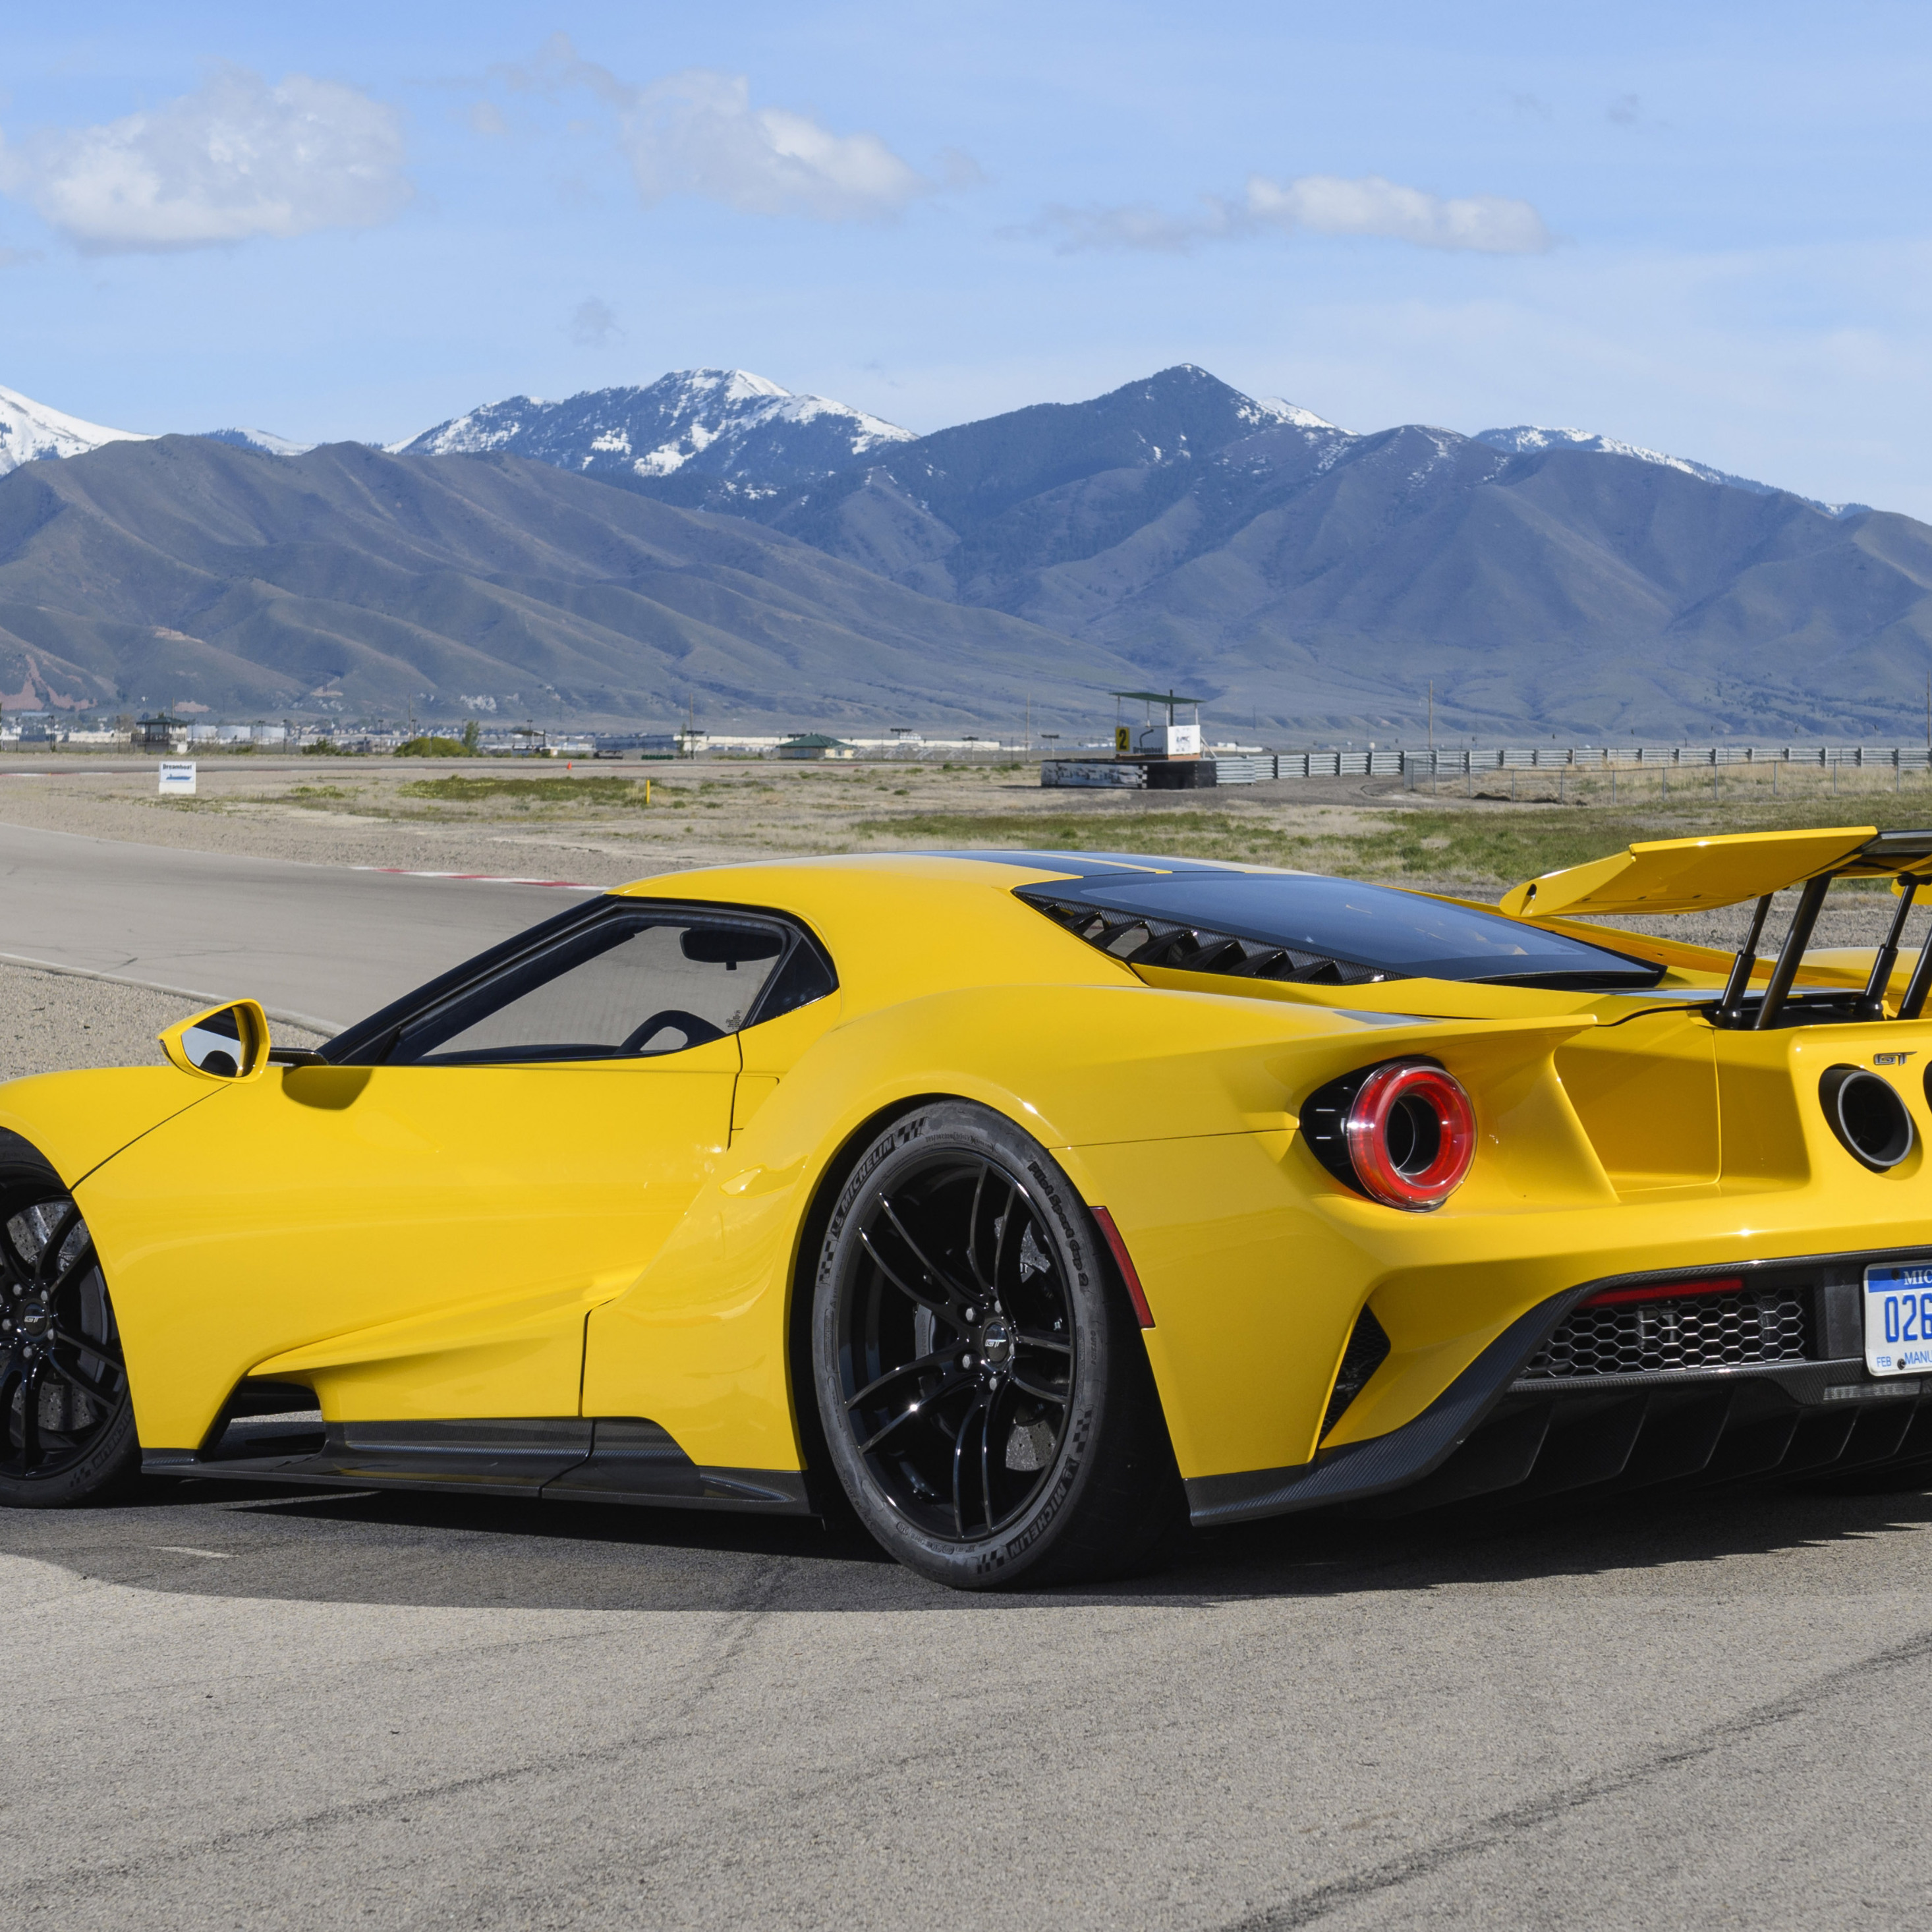 Ford Gt Pro on ford model t, ford escape, ford mustang, ford gt40, ford fusion, ford concept, ford gtx1, ford crown victoria, ford supercar, ford gt4, ford gt1000, ford gtr, ford gt500, ford gran turismo, ford gt350, ford mustanggt, ford evos, ford lightning, ford maverick,